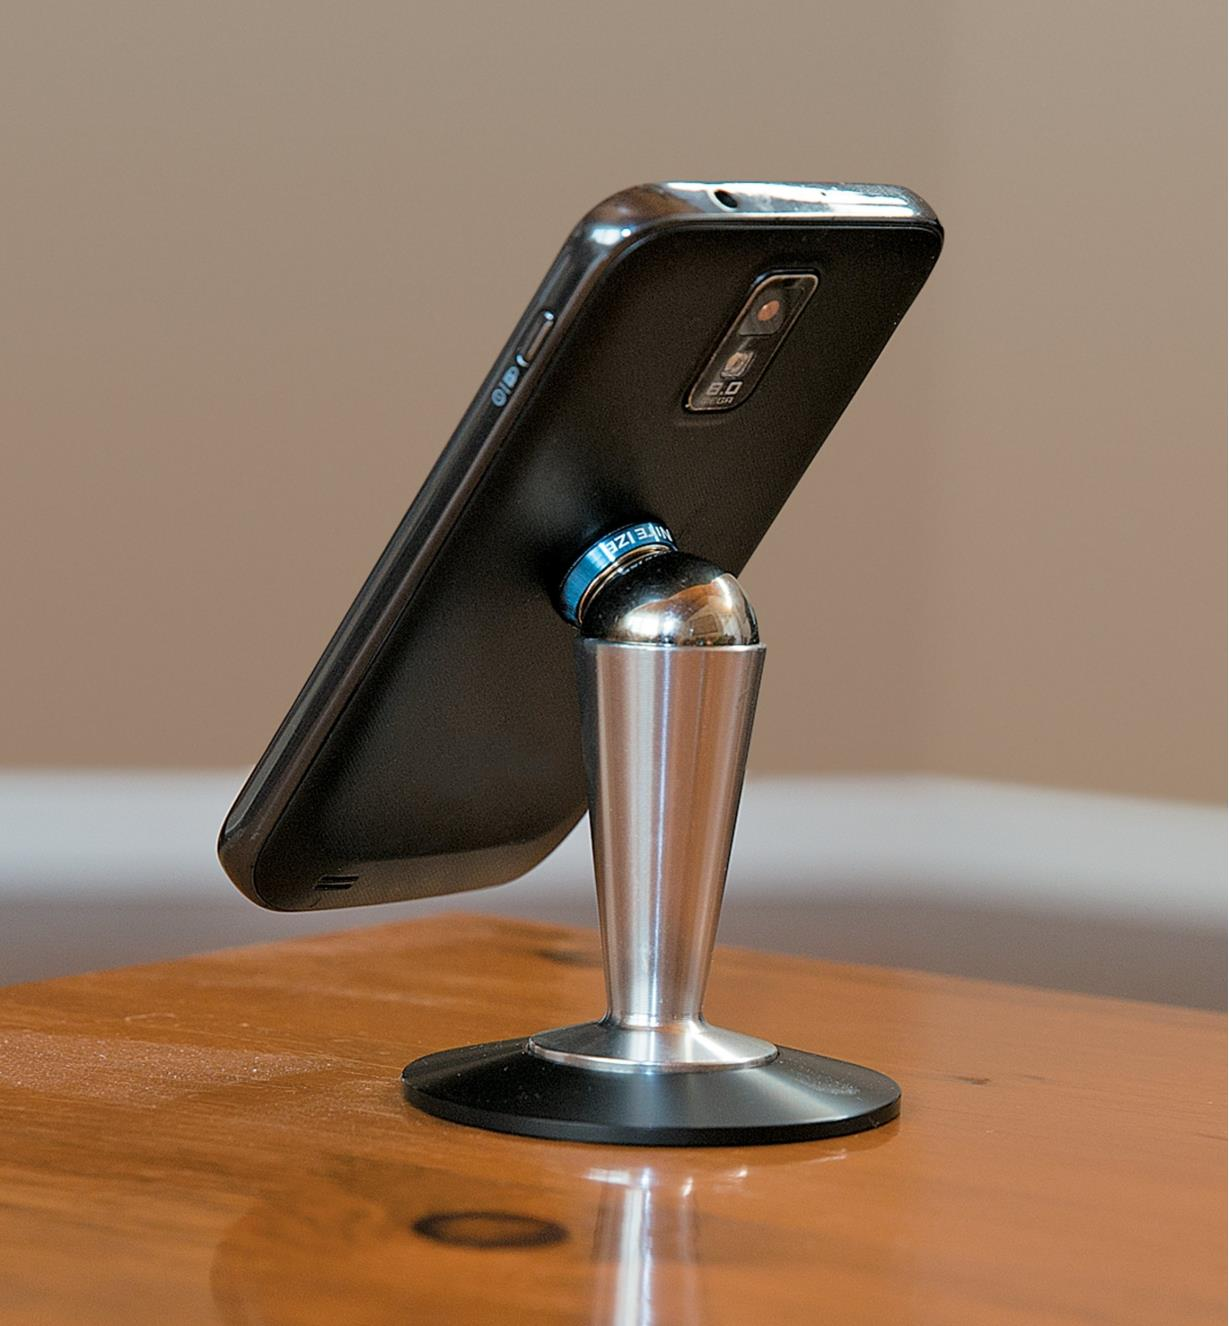 Phone attached to desktop pedestal, rotated to portrait orientation.